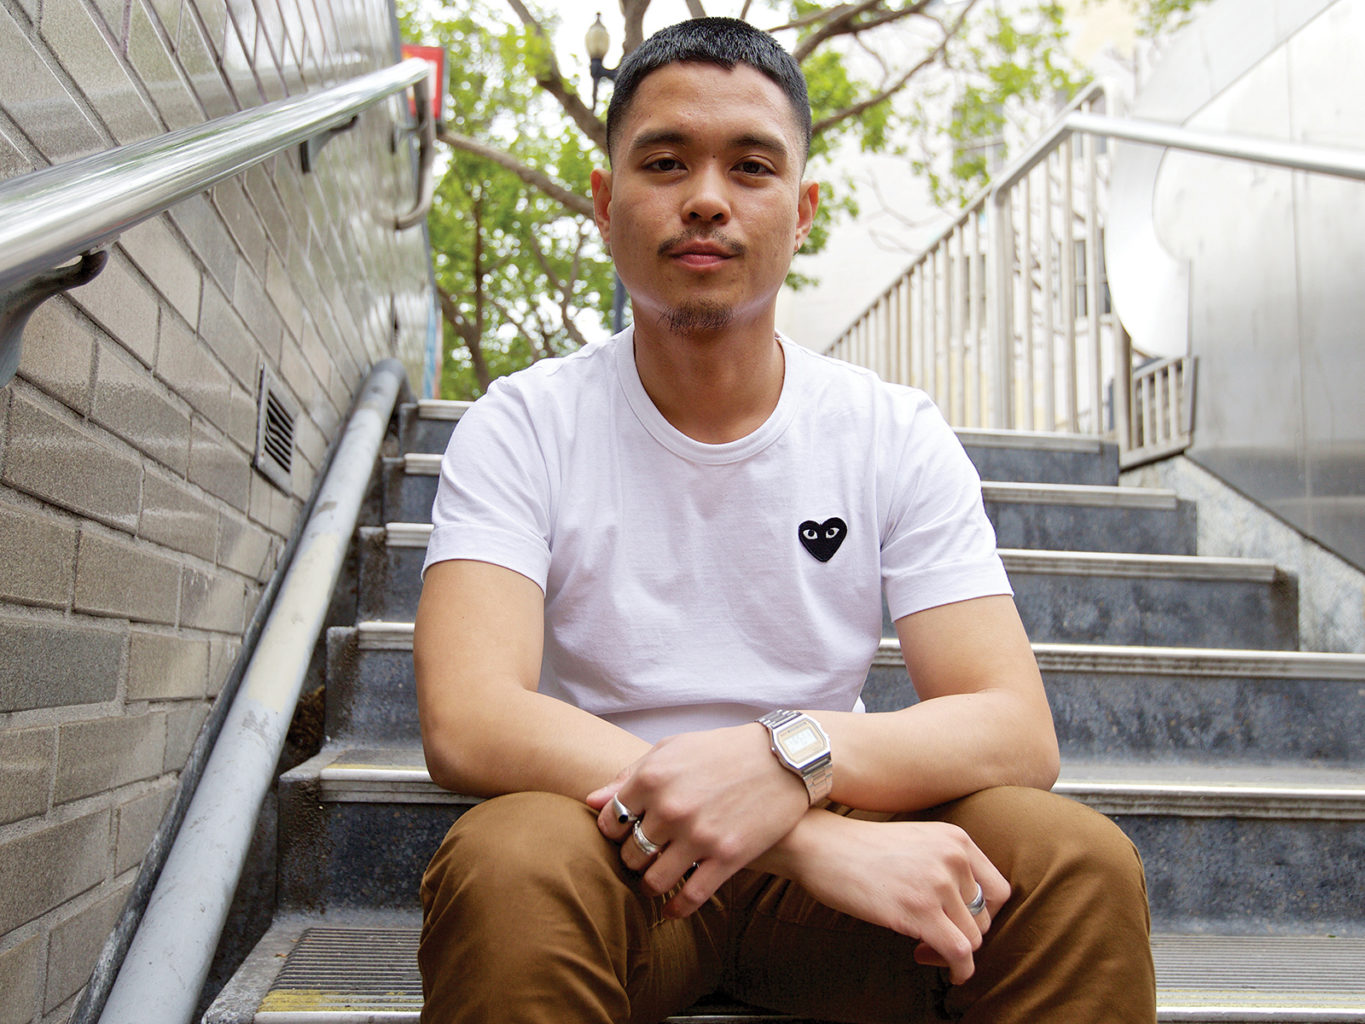 S.F. State student Jose Francisco brought attention to an inequity in health services after being denied a free screening because of his sexual orientation. (Kevin N. Hume/S.F. Examiner)